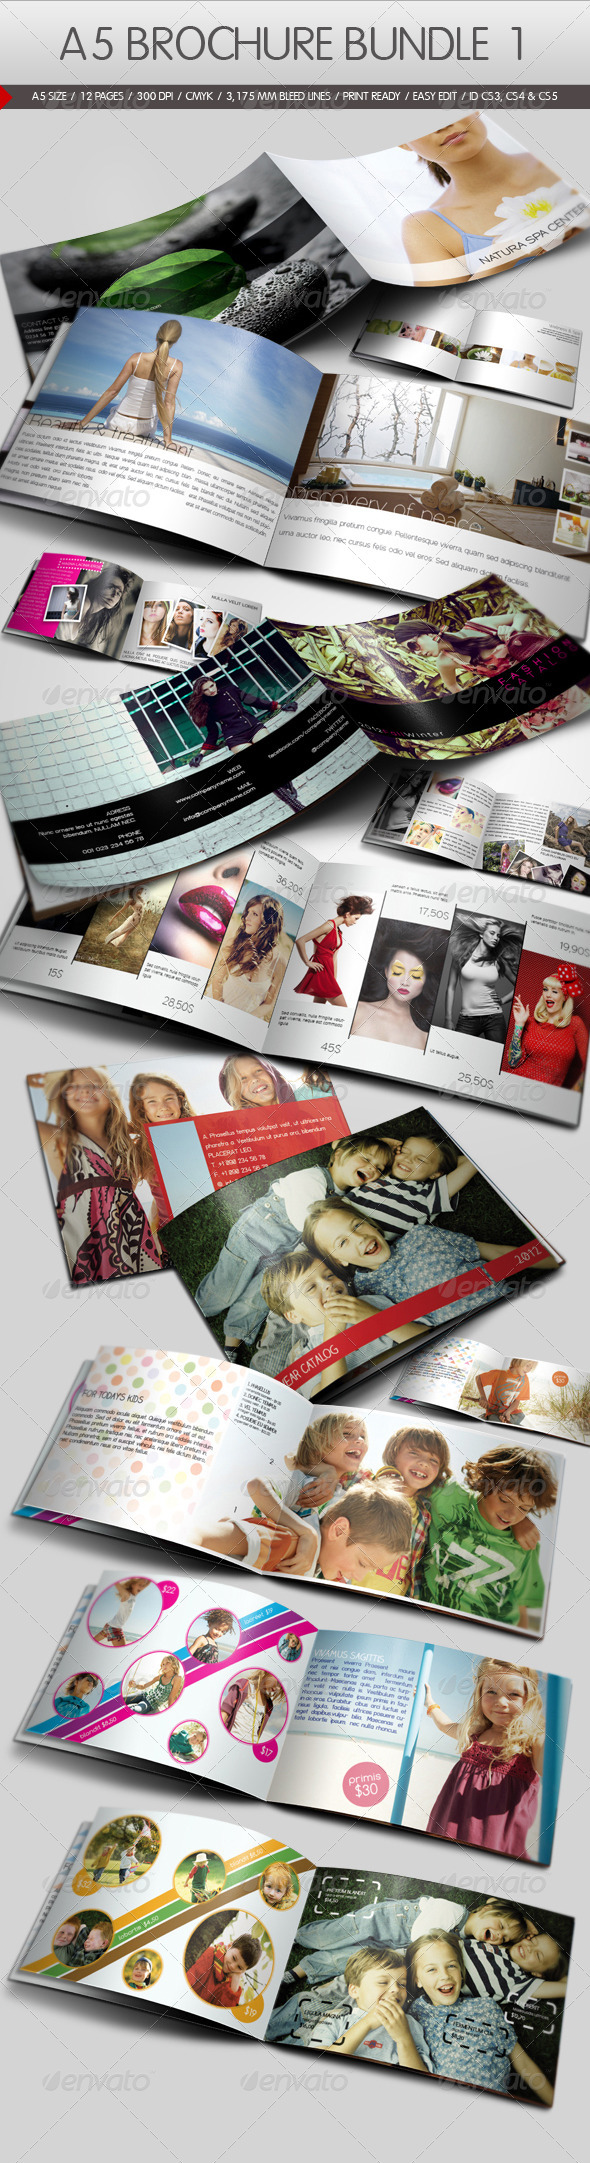 A5 Brochure Bundle I - Corporate Brochures